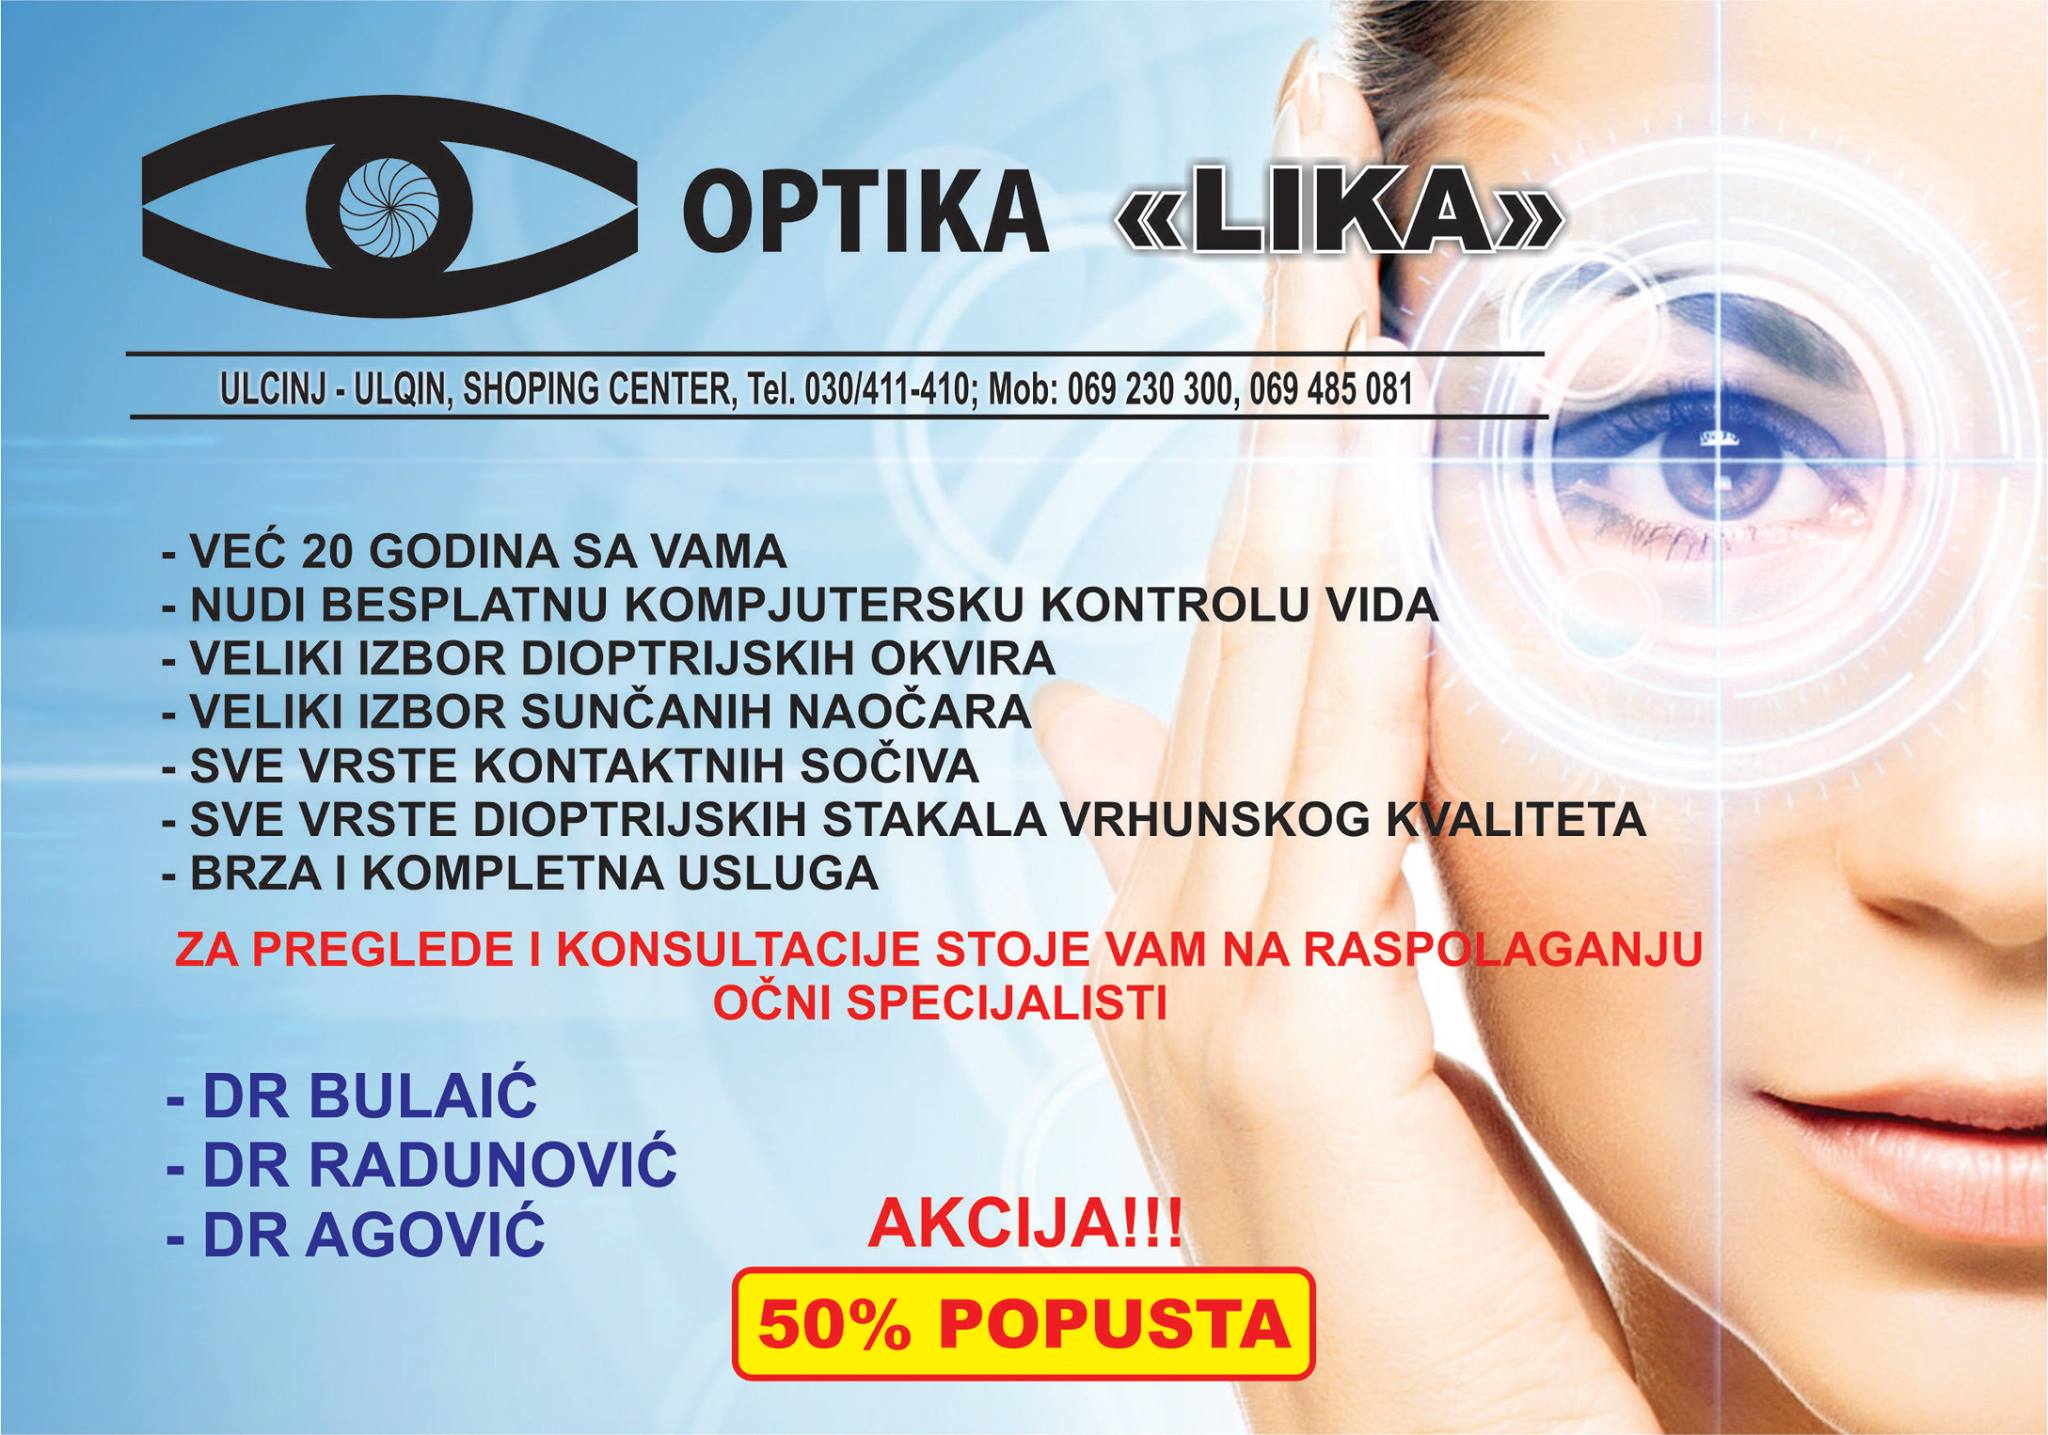 Optika Lika